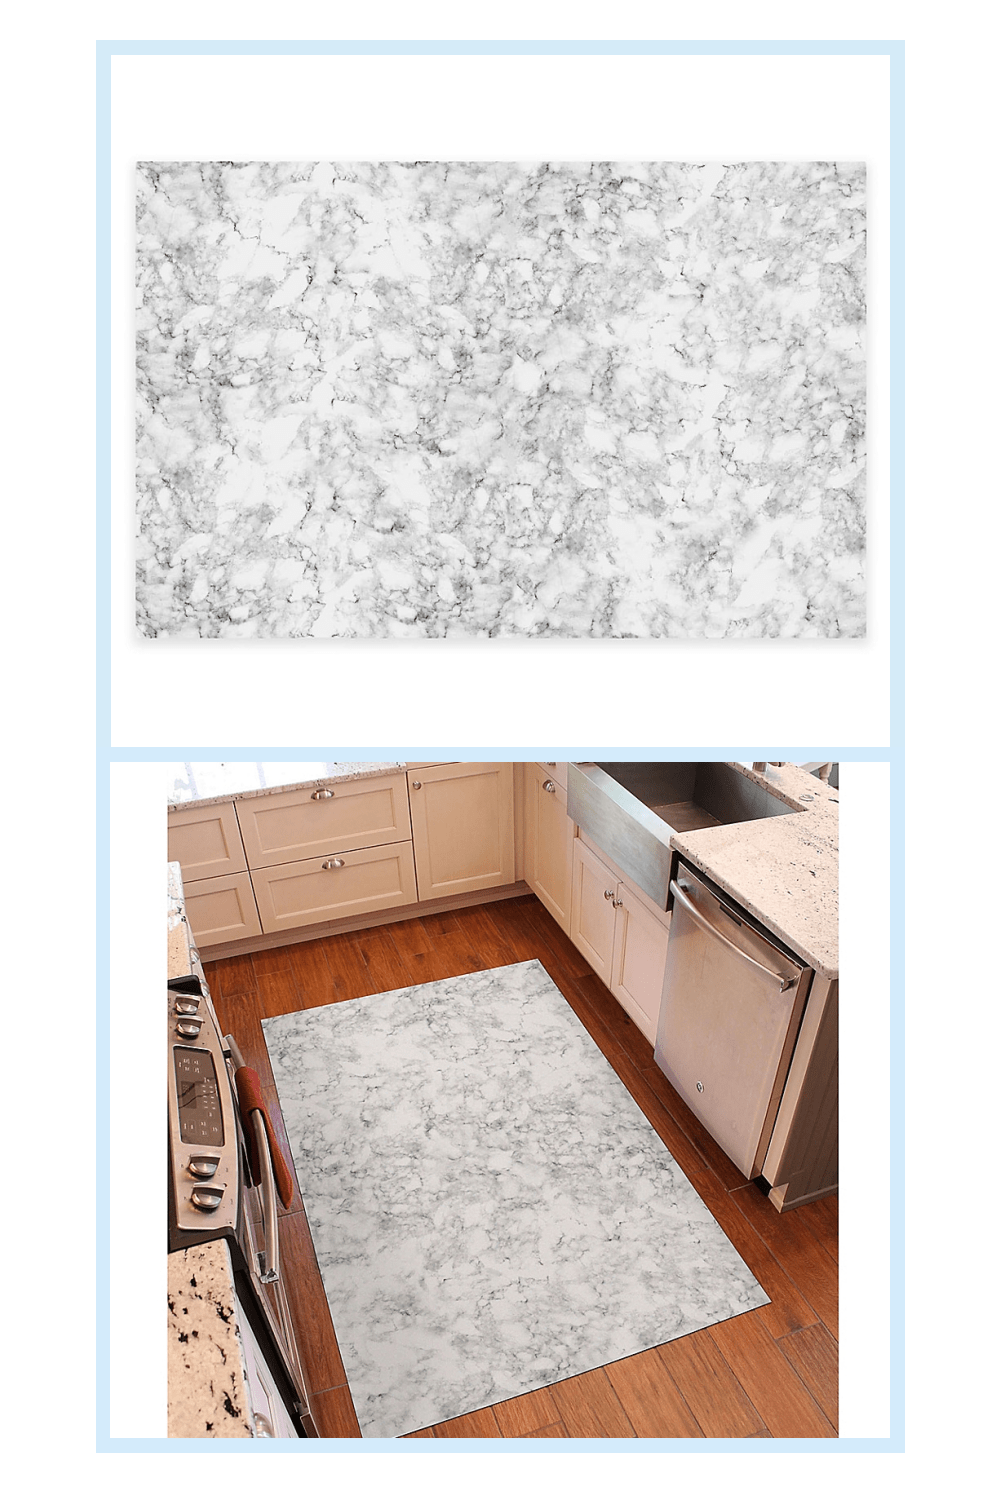 Florart 72 X 48 Classic Marble Kitchen Mat In White Kitchen Marble Kitchen Mat White Bedding